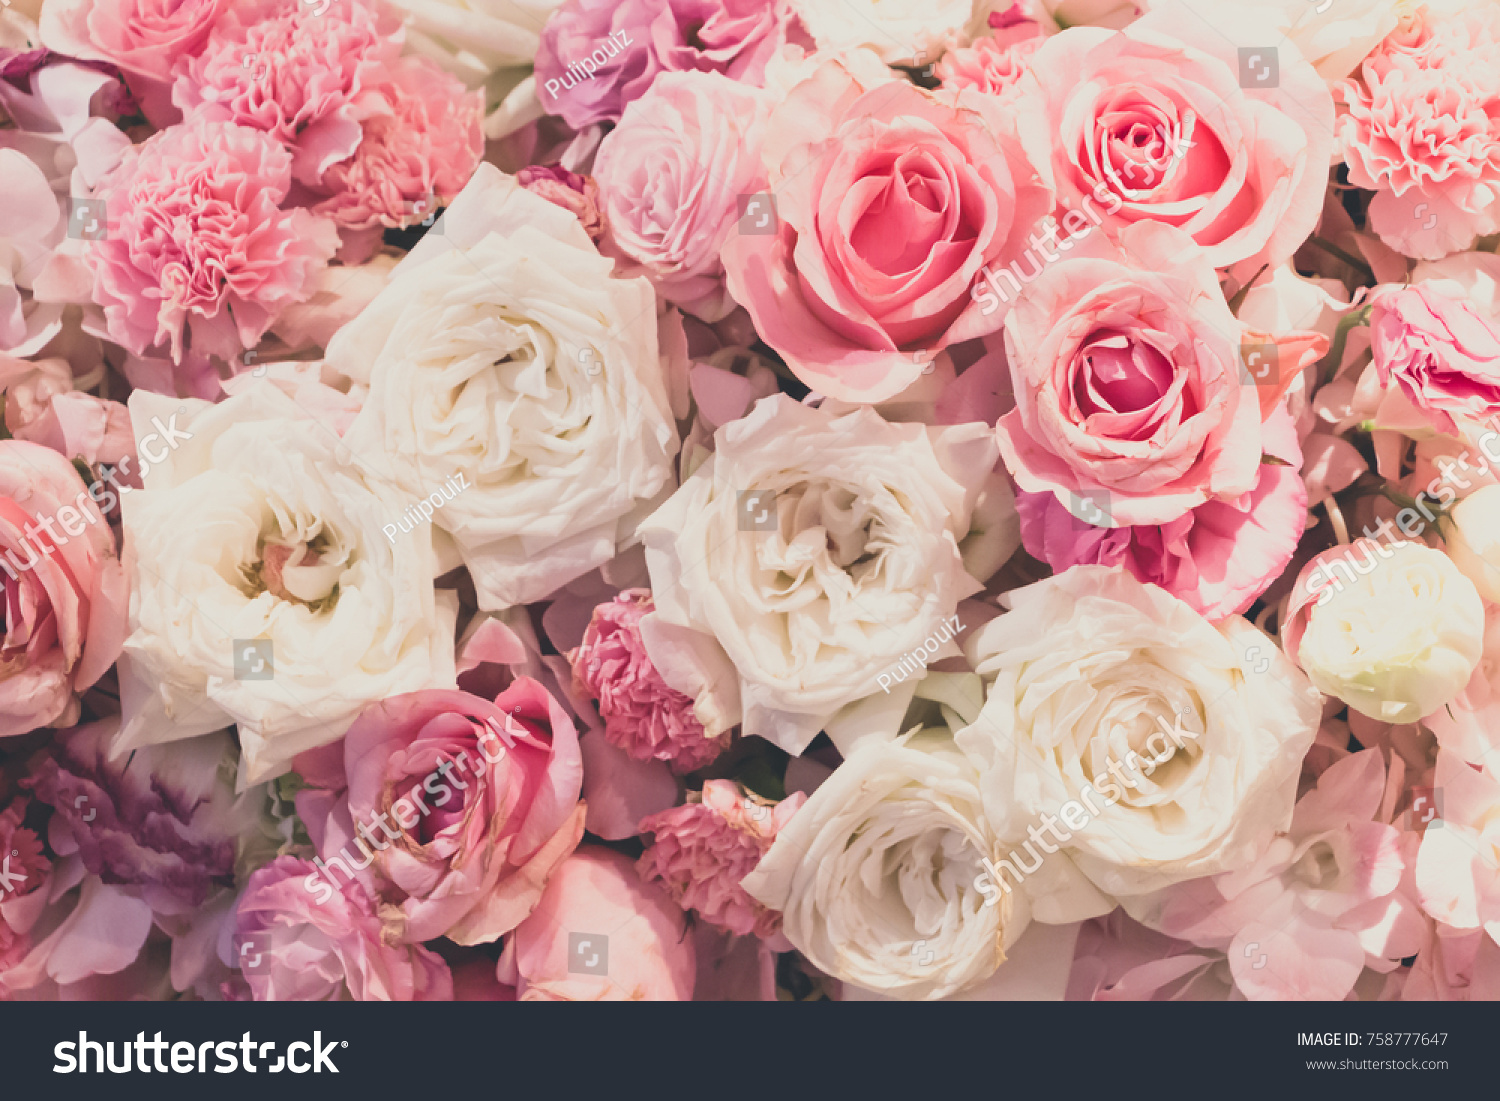 Natural Pink White Roses Pink Flowers Stock Photo Edit Now